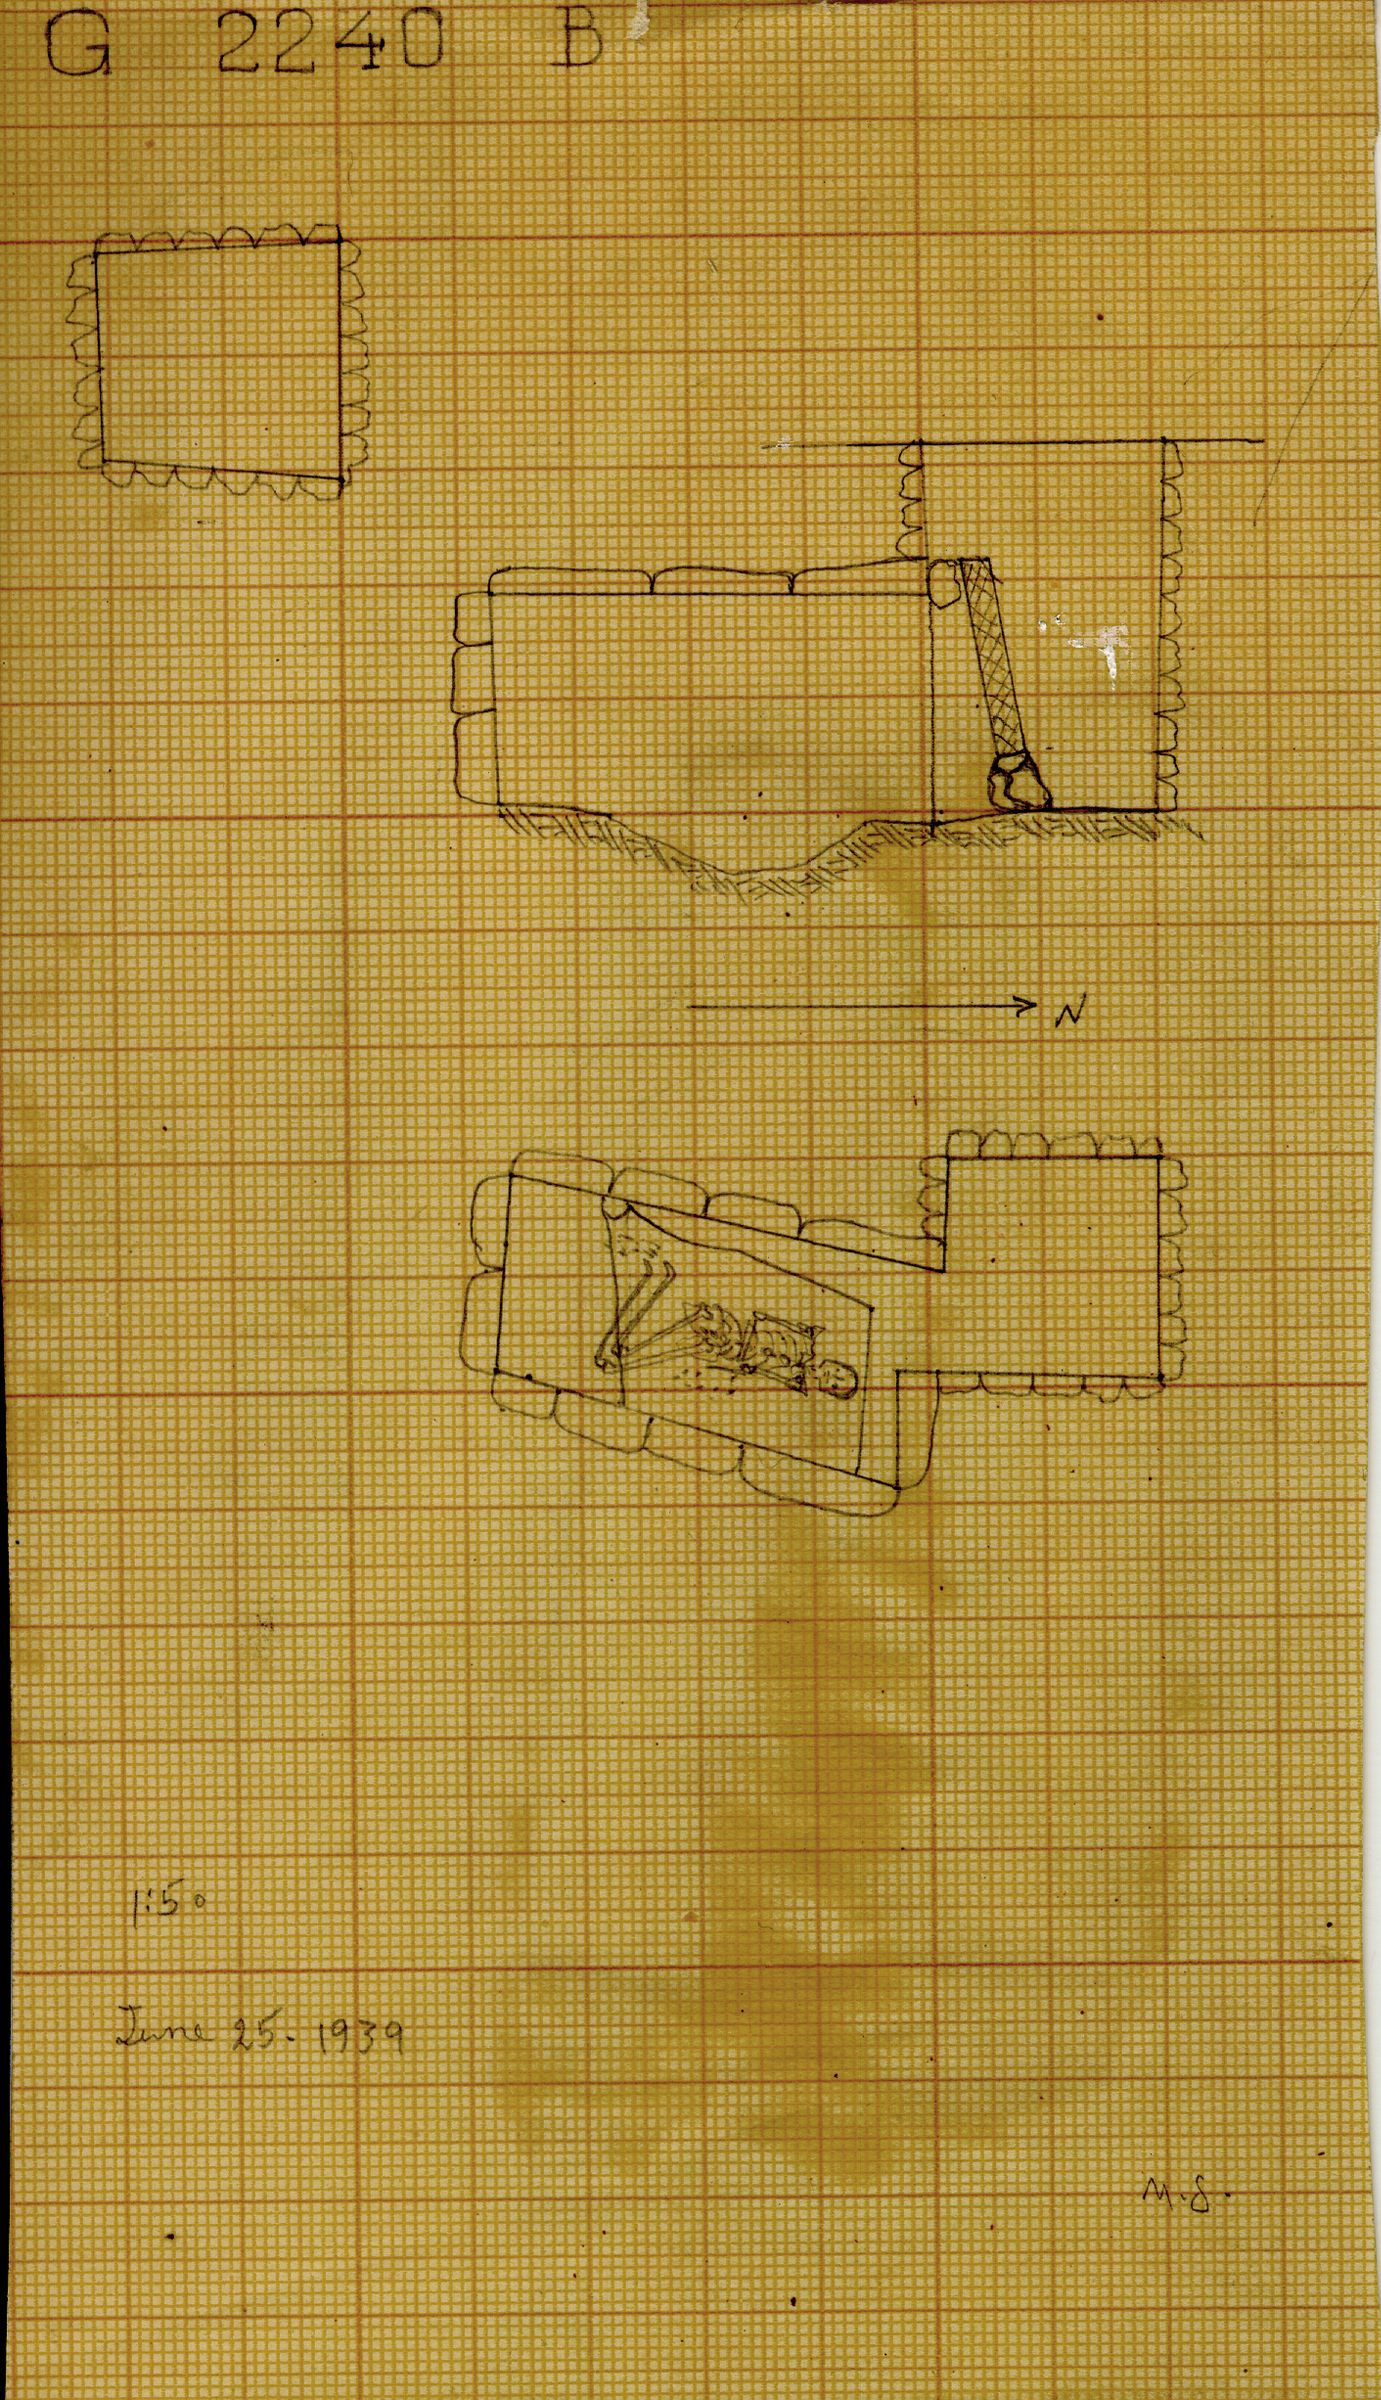 Maps and plans: G 2240, Shaft B